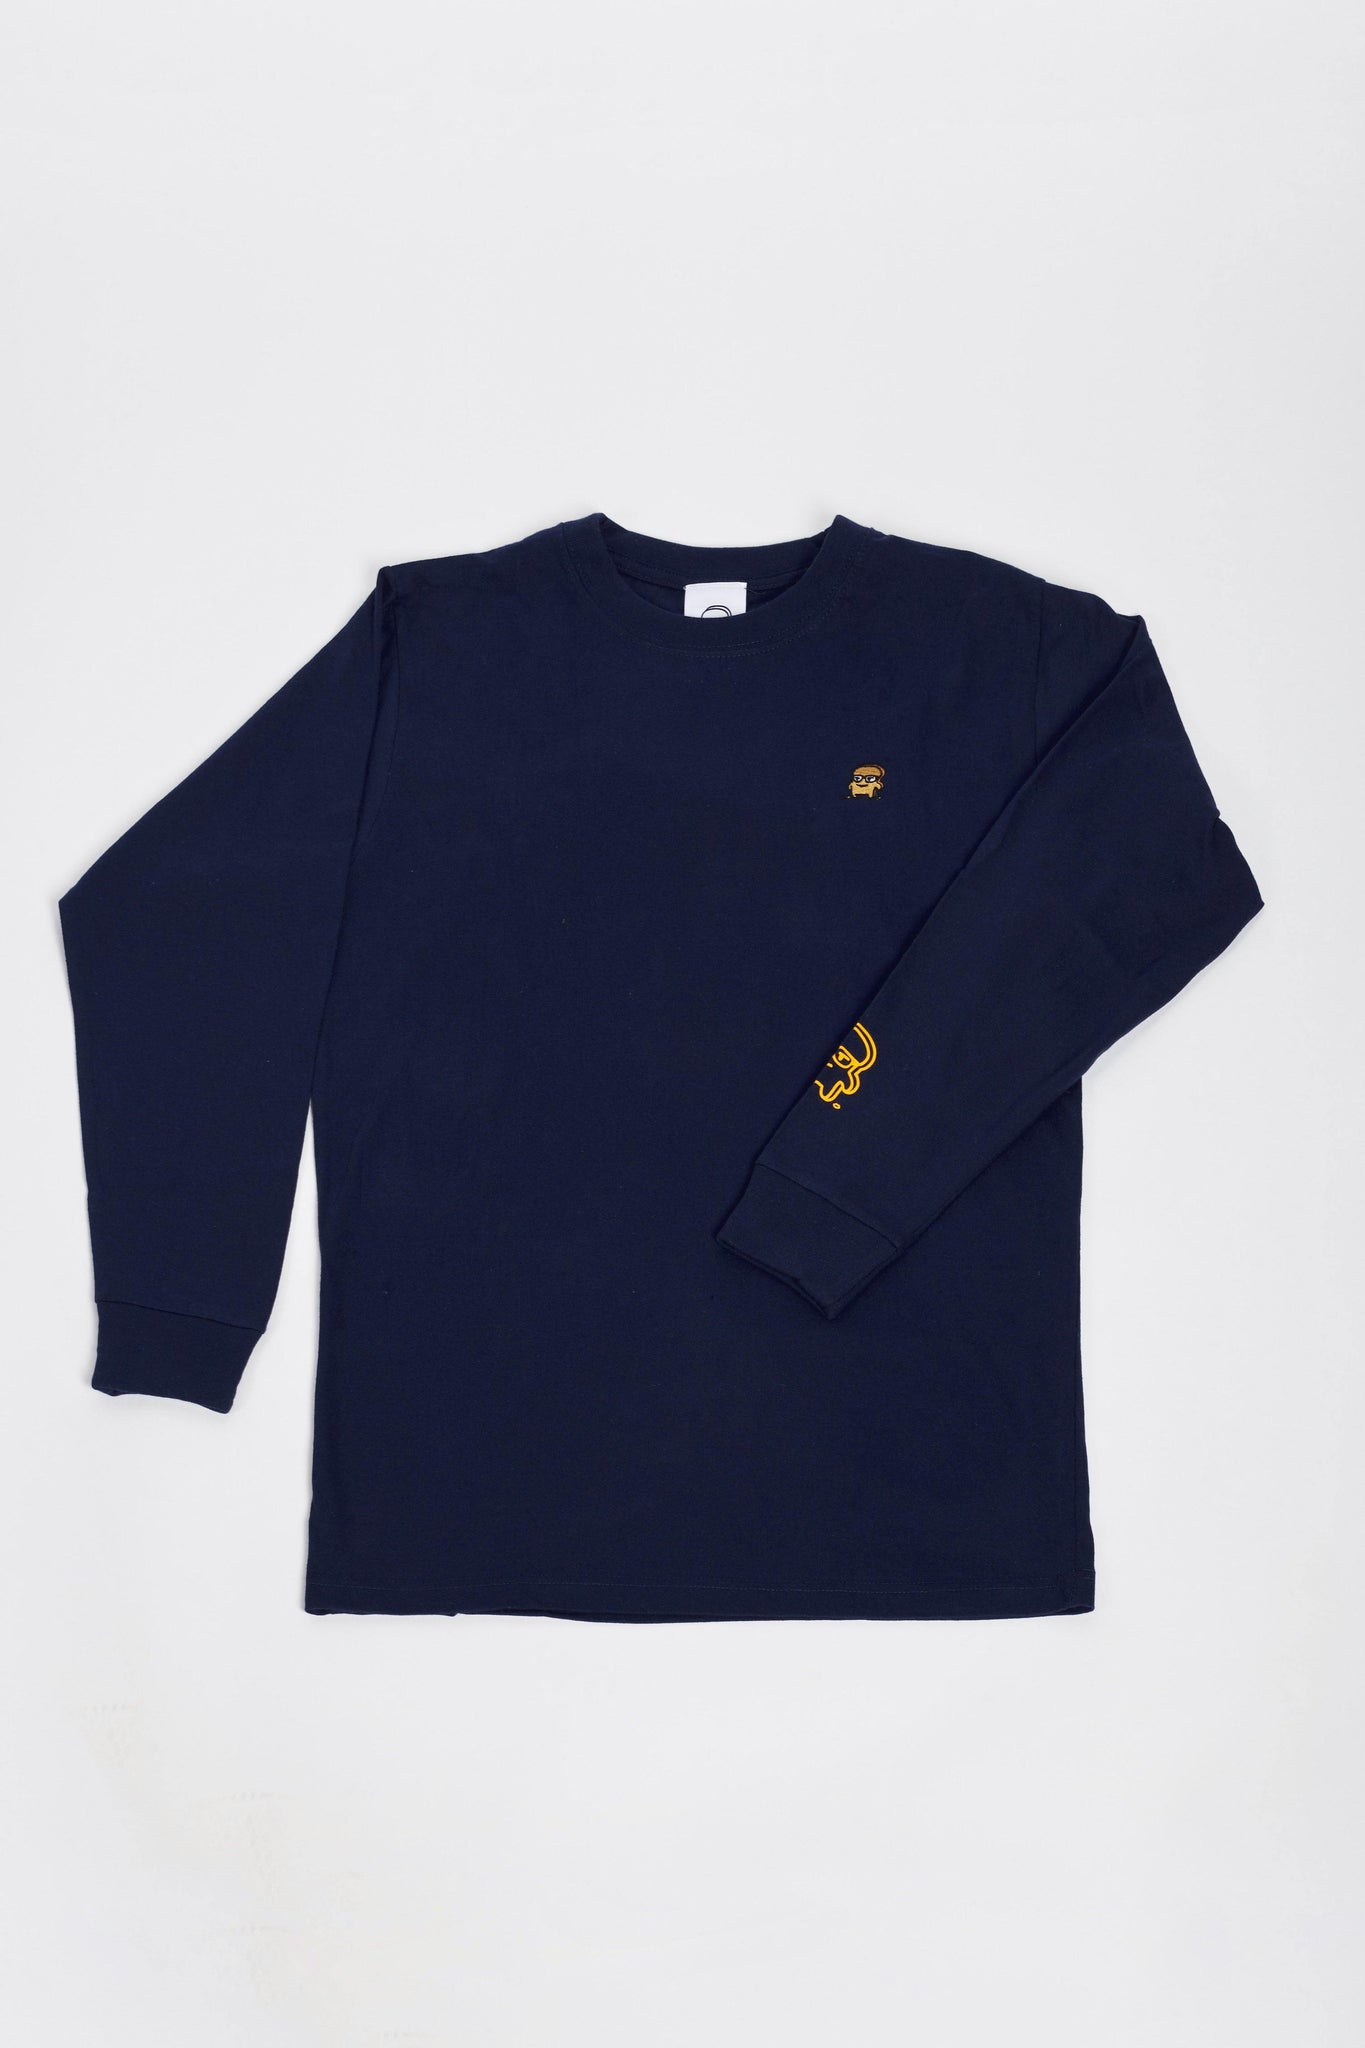 DARK BLUE LONG SLEEVE - Choast